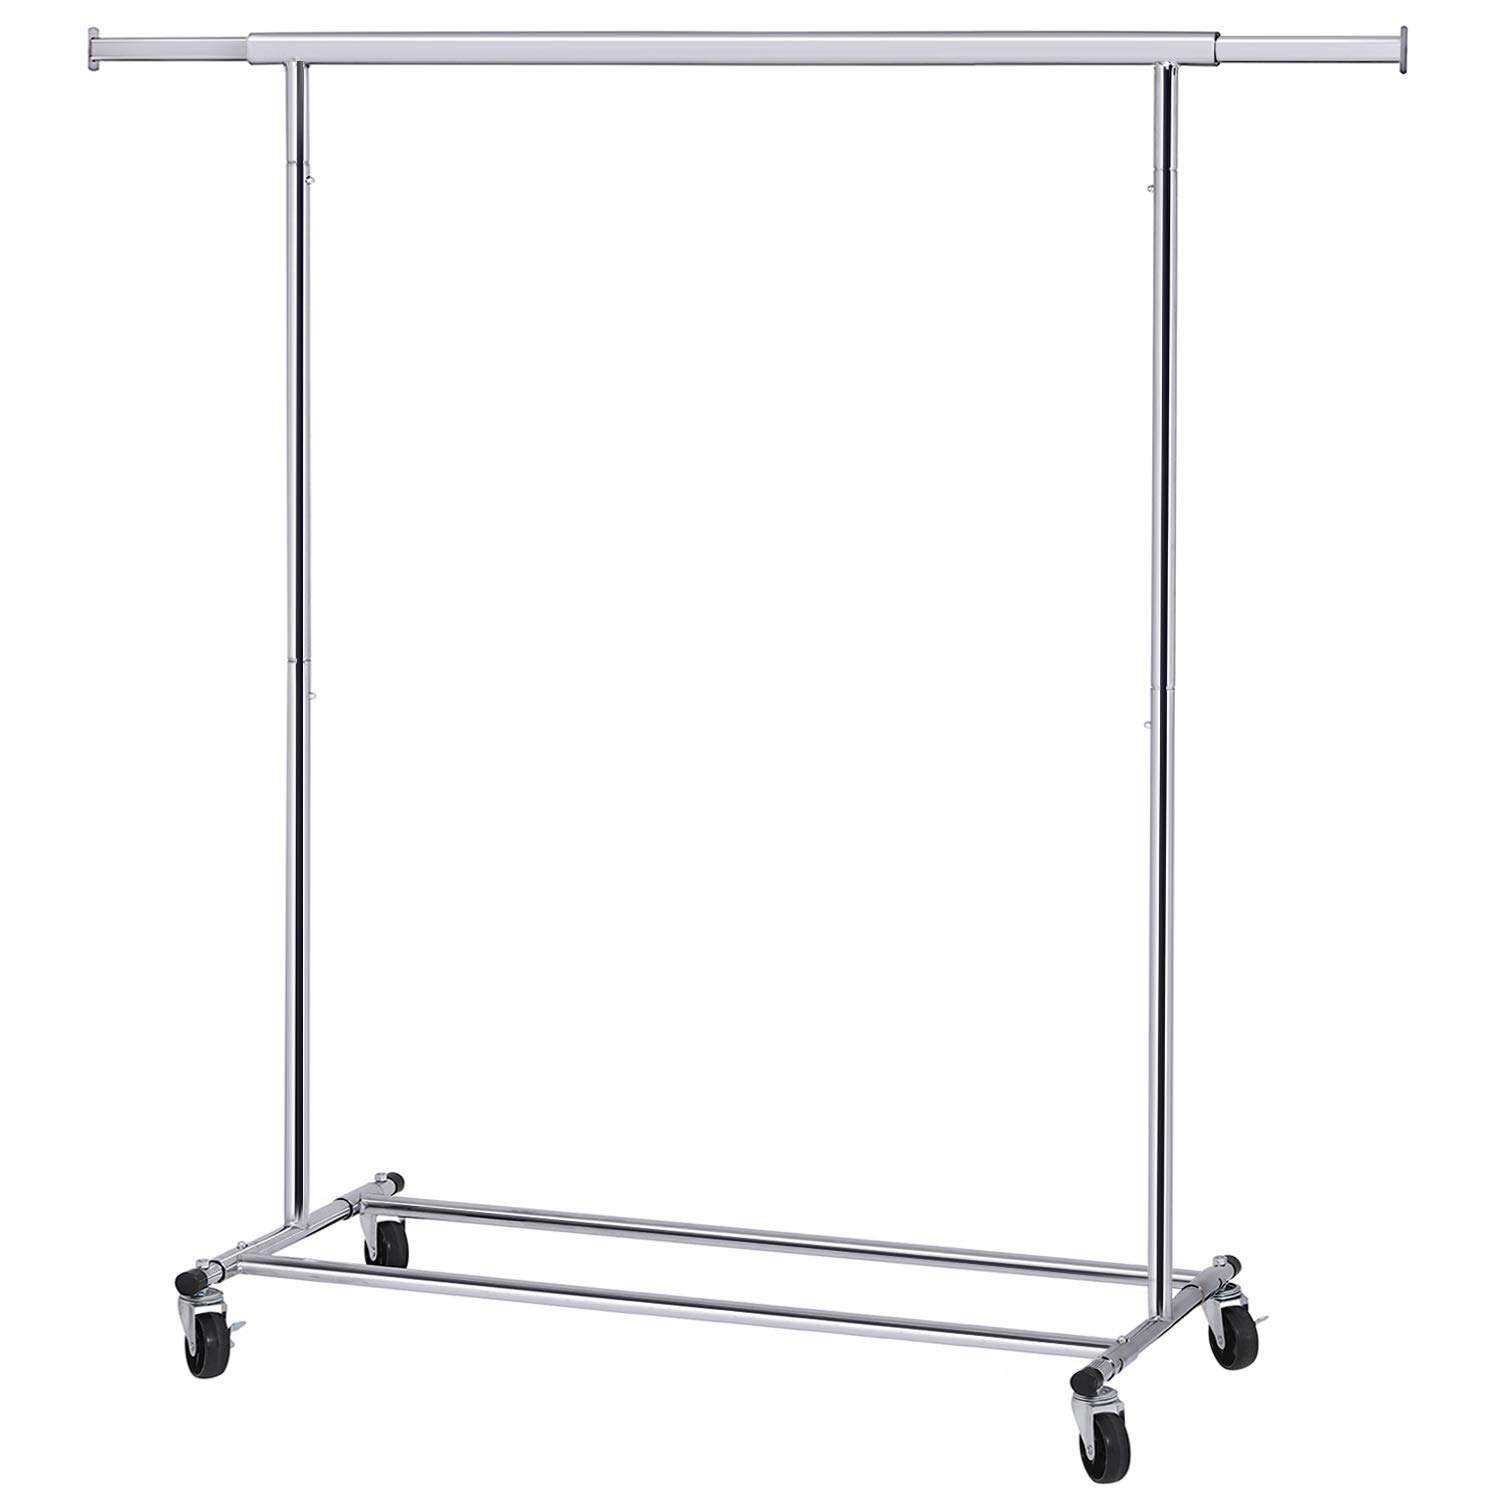 SONGMICS Clothes Rack on Wheels, Heavy Duty Garment Rack with Extendable Hanging Rail, Holds up to 200 lb, Collapsible Clothing Rack UHSR13S by SONGMICS